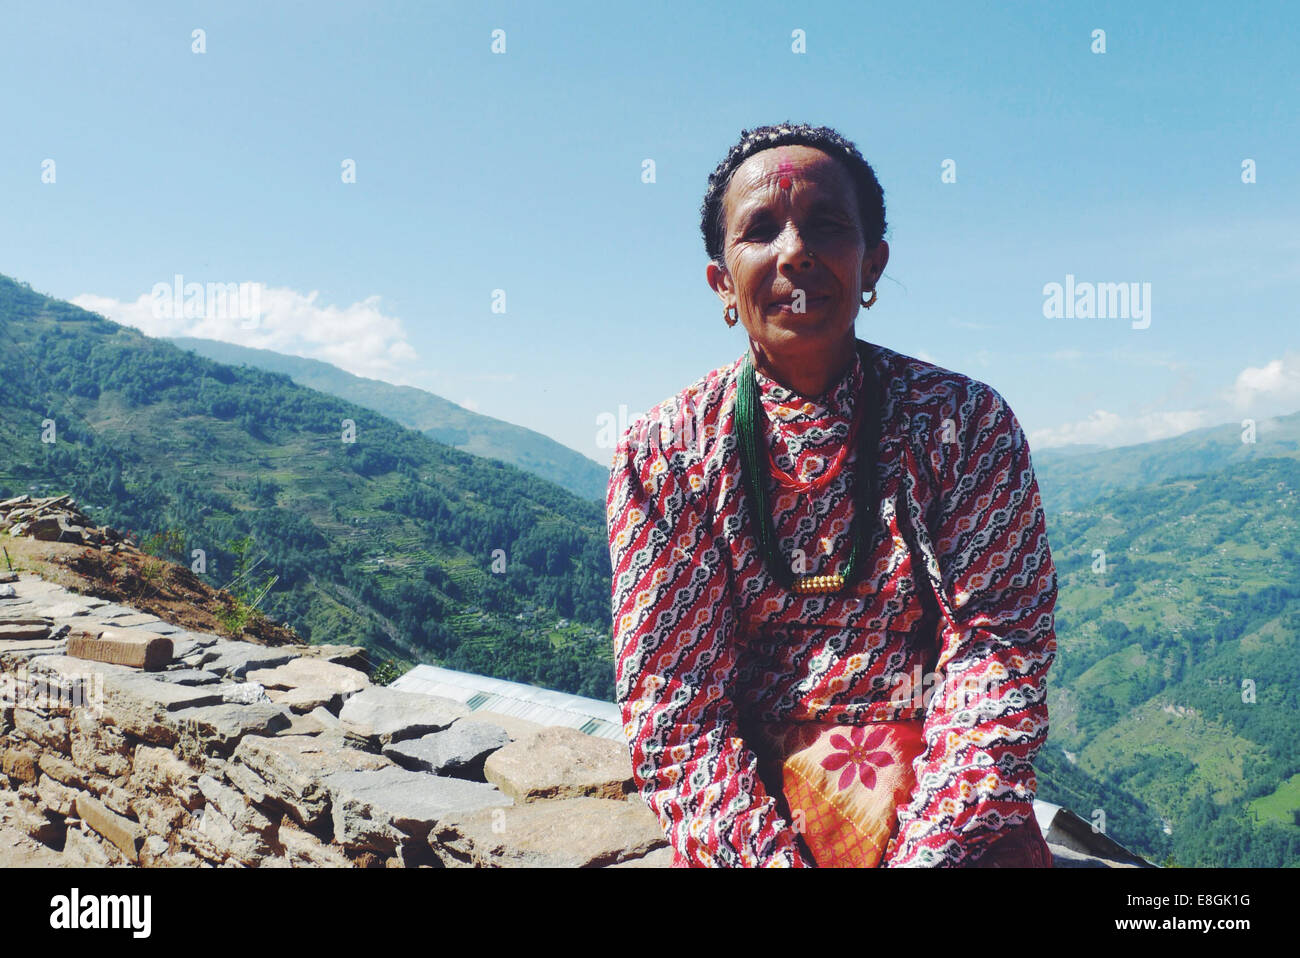 Portrait of woman sitting on stone wall in mountains - Stock Image